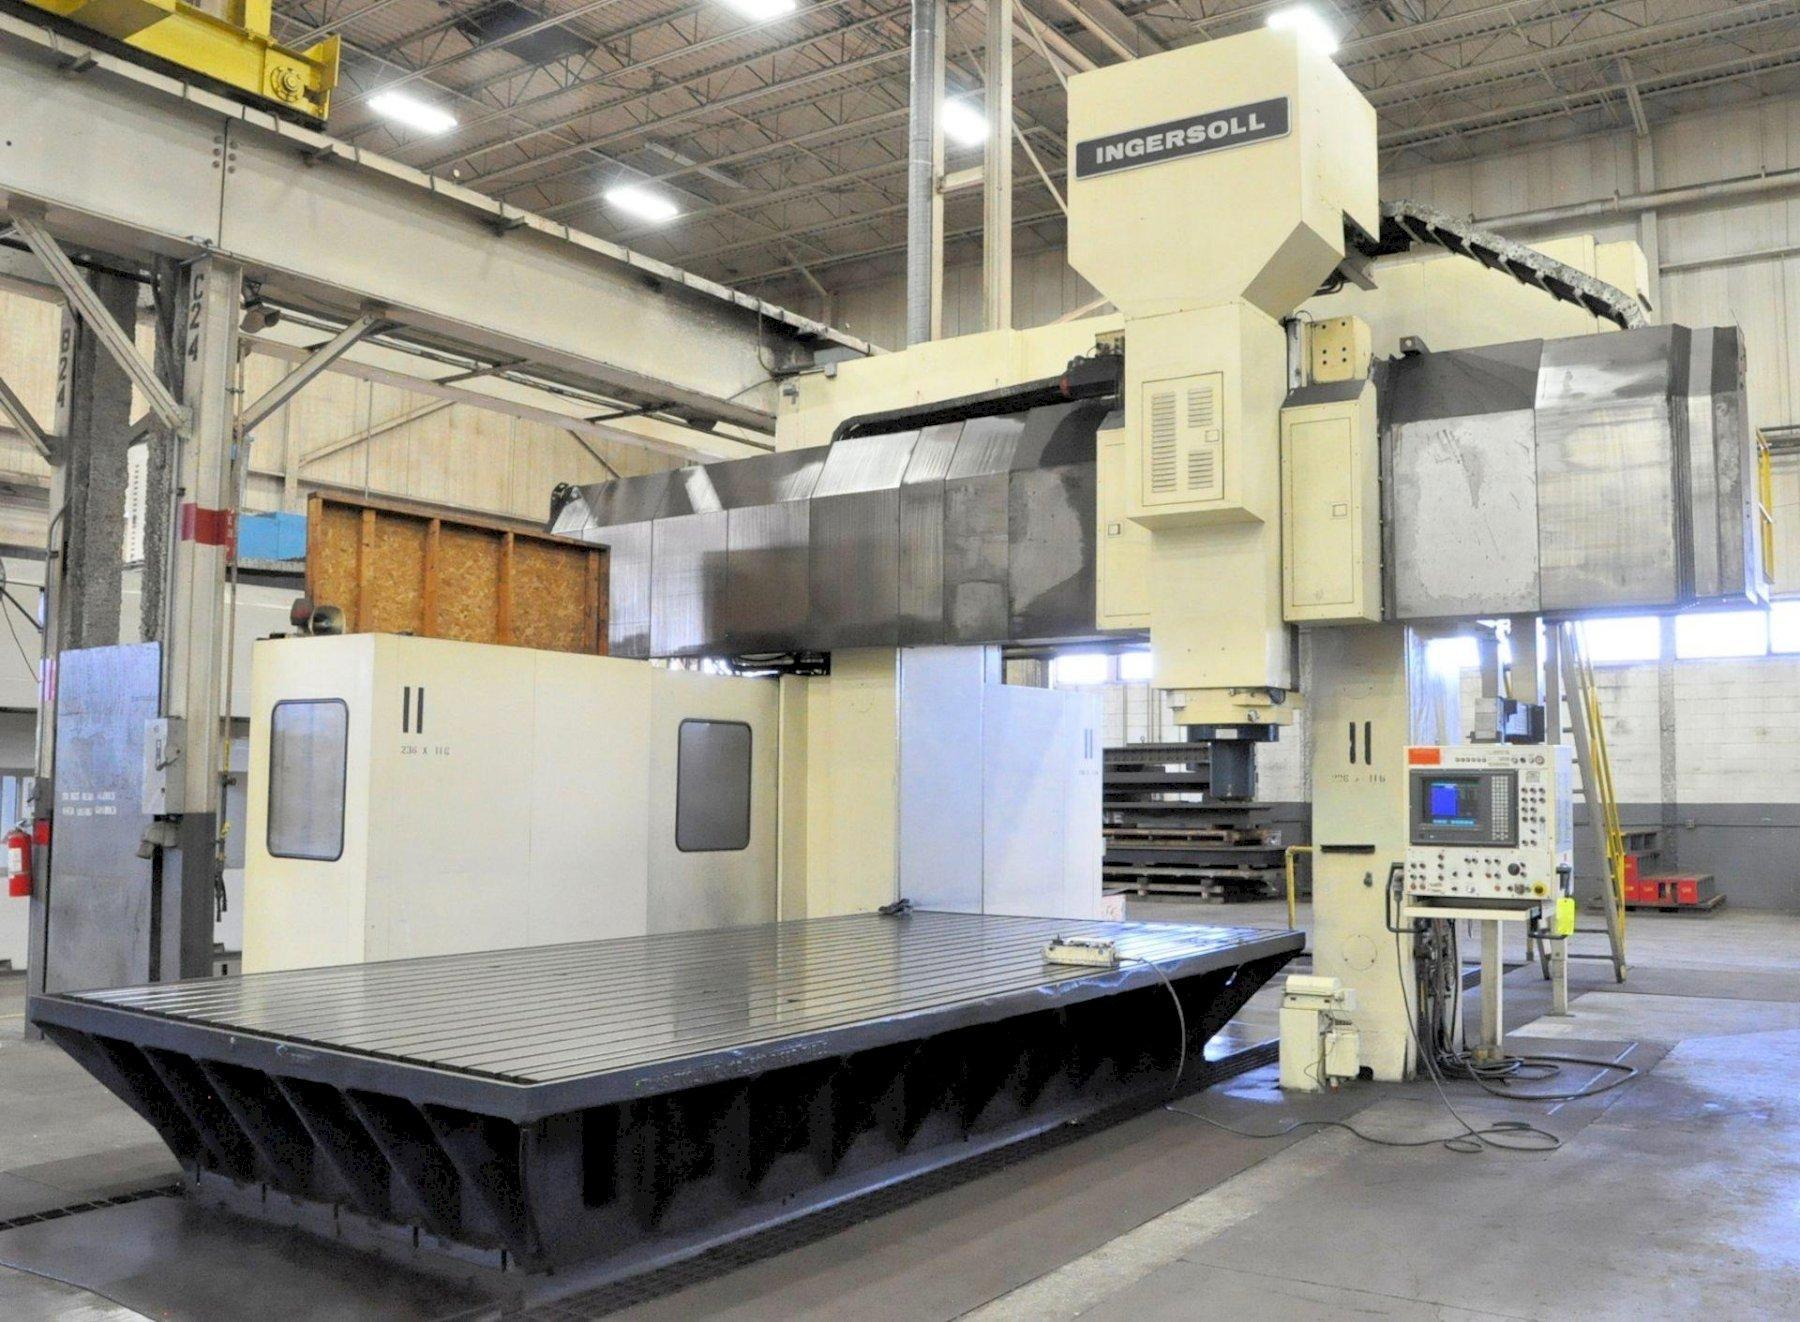 "Ingersoll Model Master Center 5-Axis Gantry Type CNC Vertical Machining Center, , 236"" x 116"" Table Size, 216.5"" X-Axis, 98.4"" Y-Axis, 53.1"" Z-Axis,  Automatic head Changer, Oil Cooler, Chip Conveyor, 1995, (2) Avail"